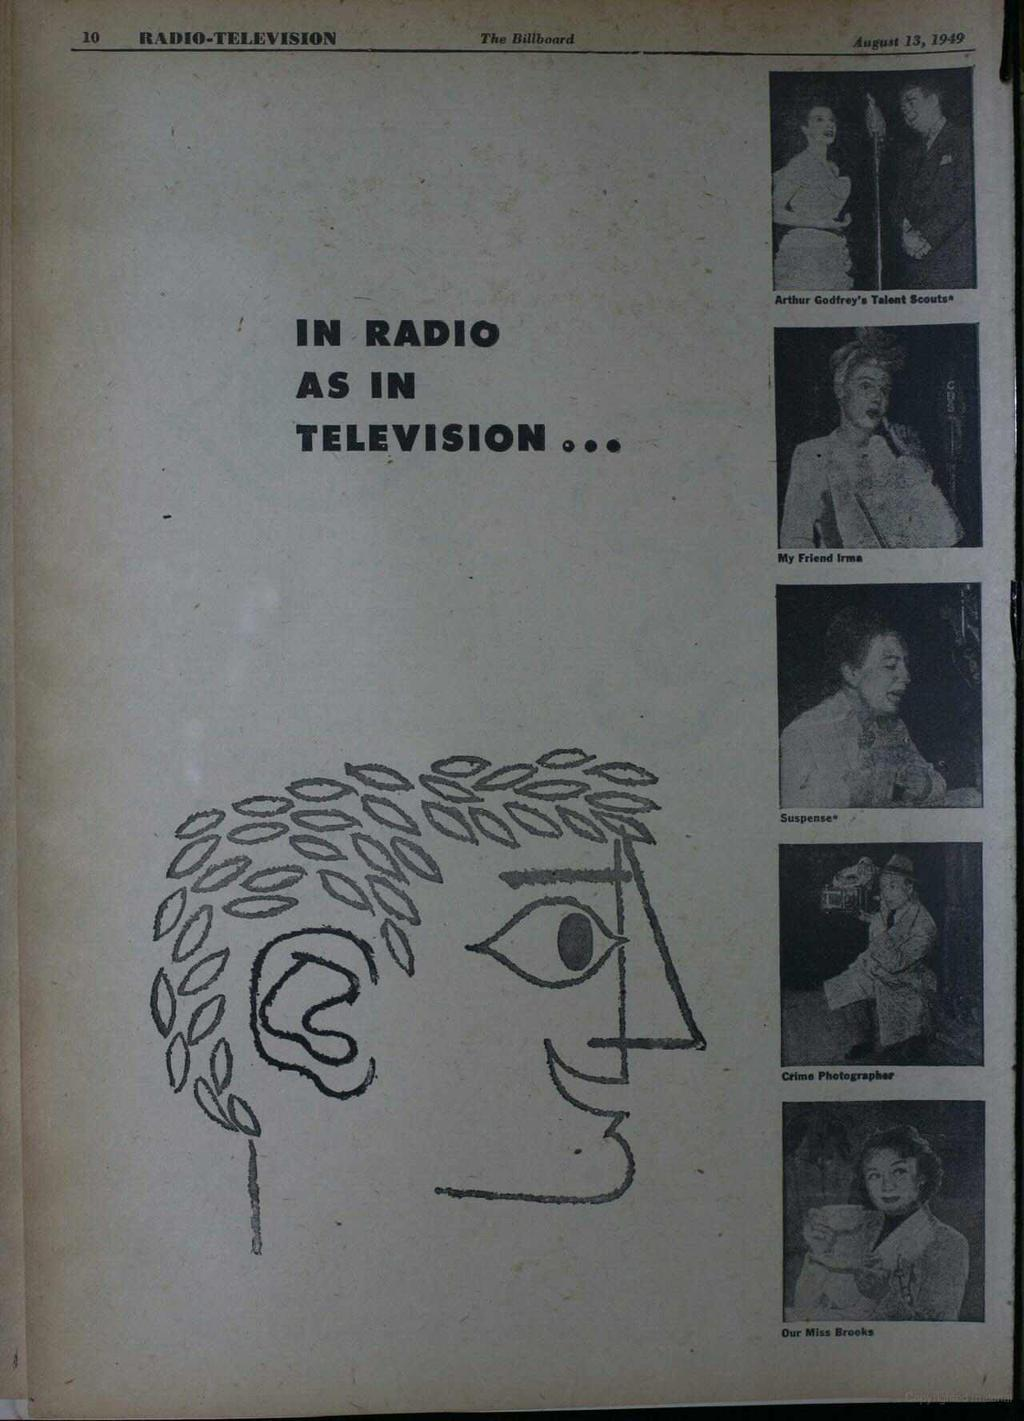 dcc1956b6d4 10 RADIO-TELEVISION The Billboard August 13